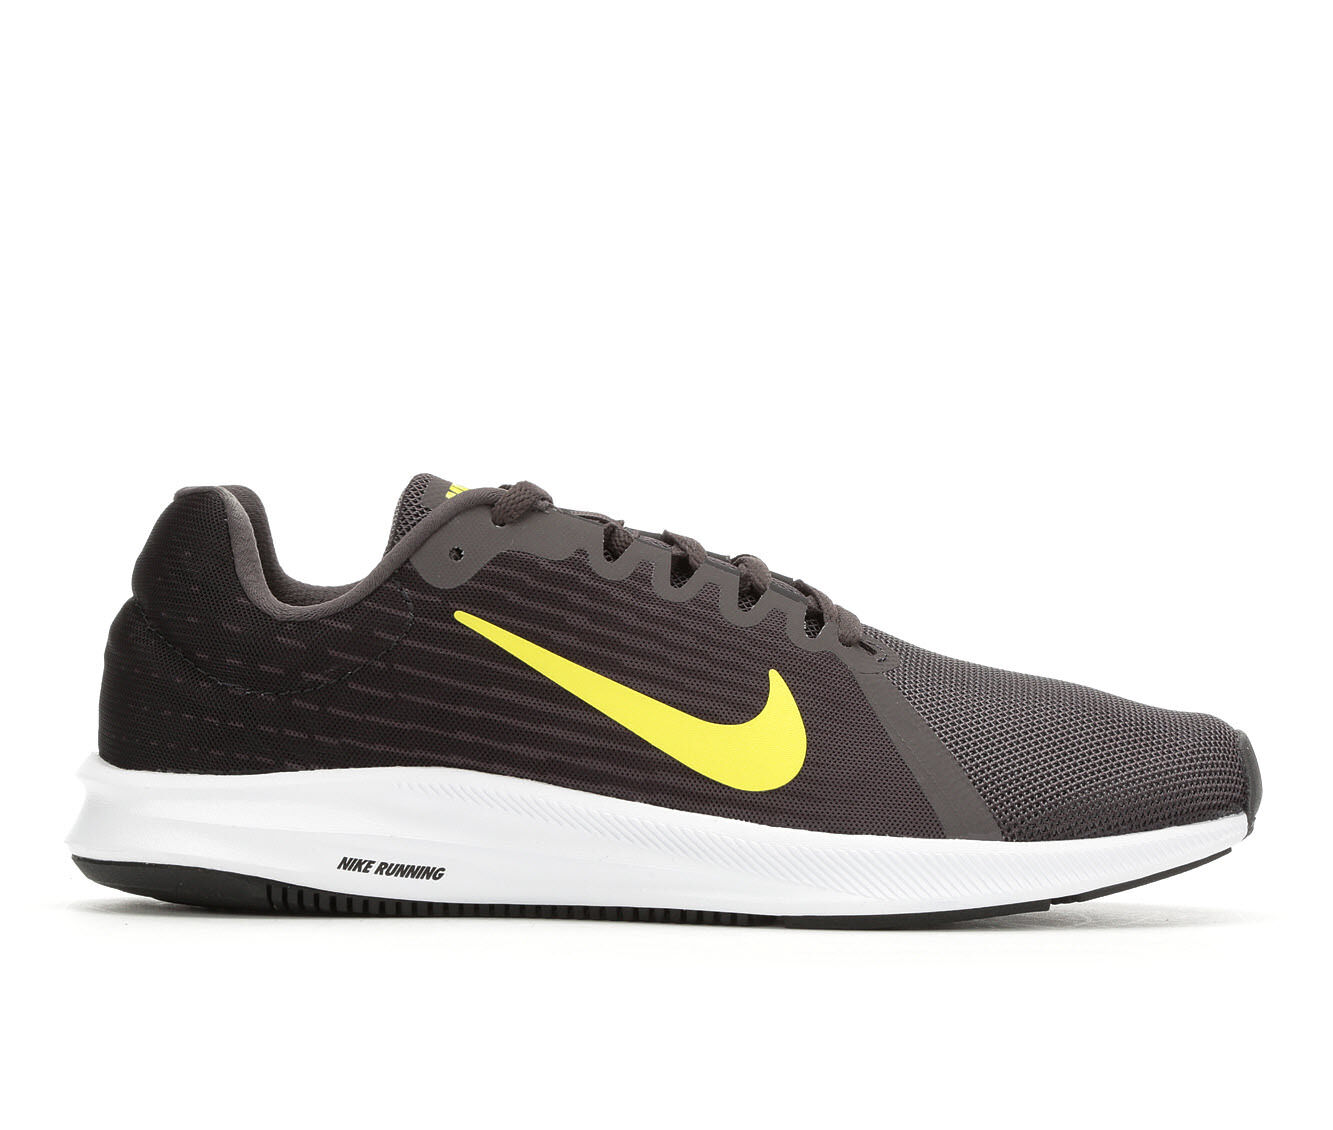 Cost Charm Men's Nike Downshifter 8 Running Shoes Gy/Yl/Gy/Bk